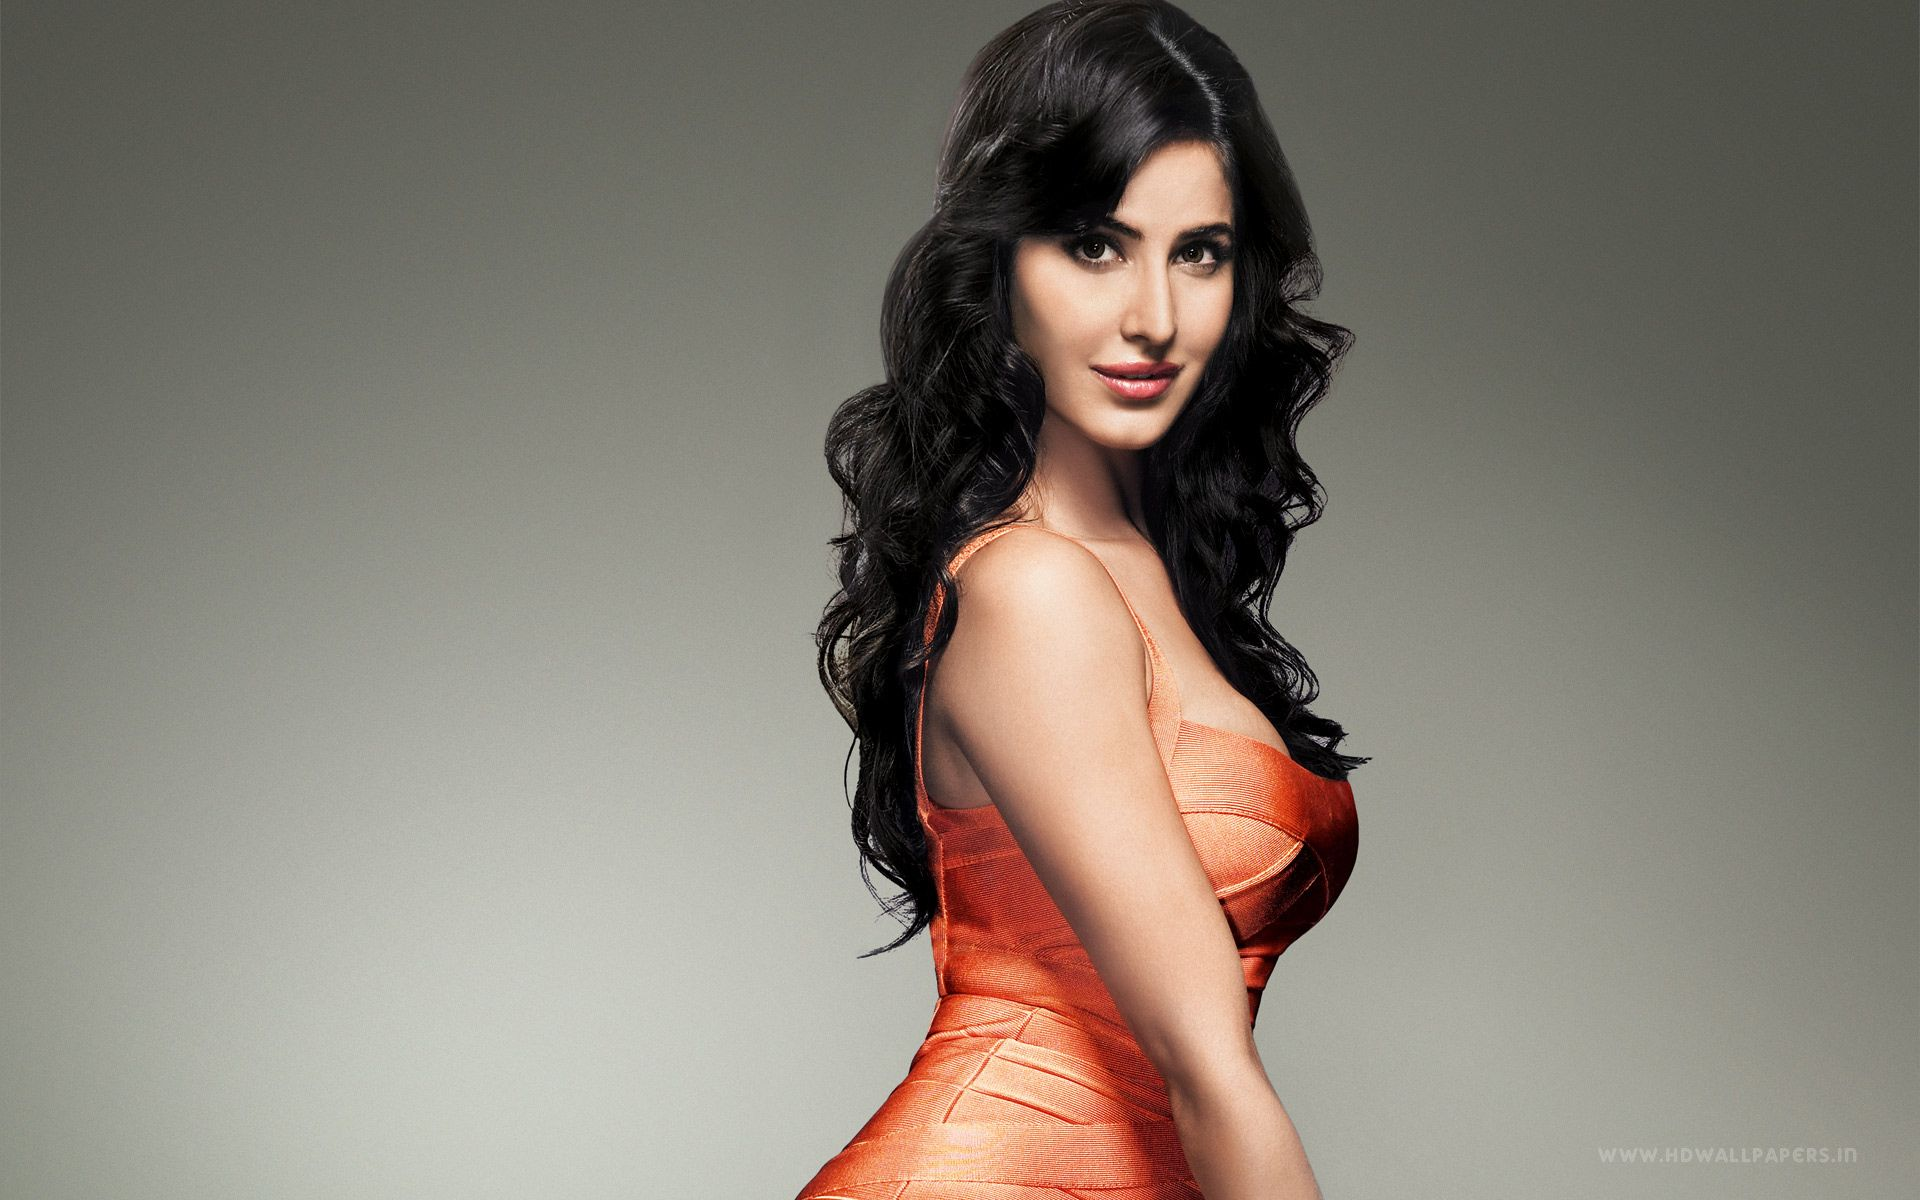 Katrina Kaif photos best looking hot and beautiful HQ and HD